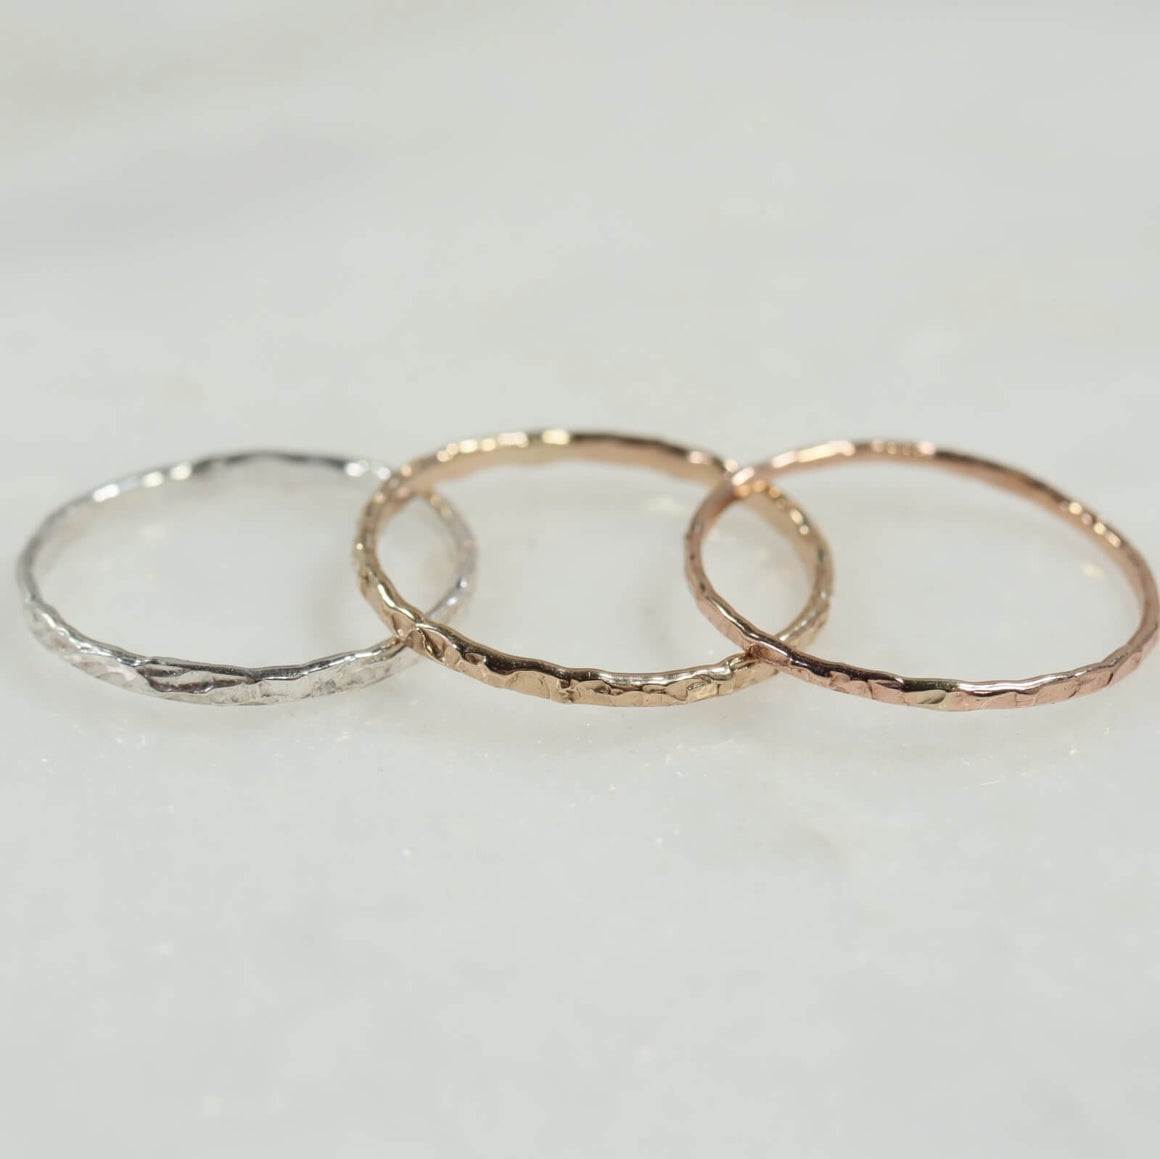 chiseled thin band ring silver, gold, pink gold